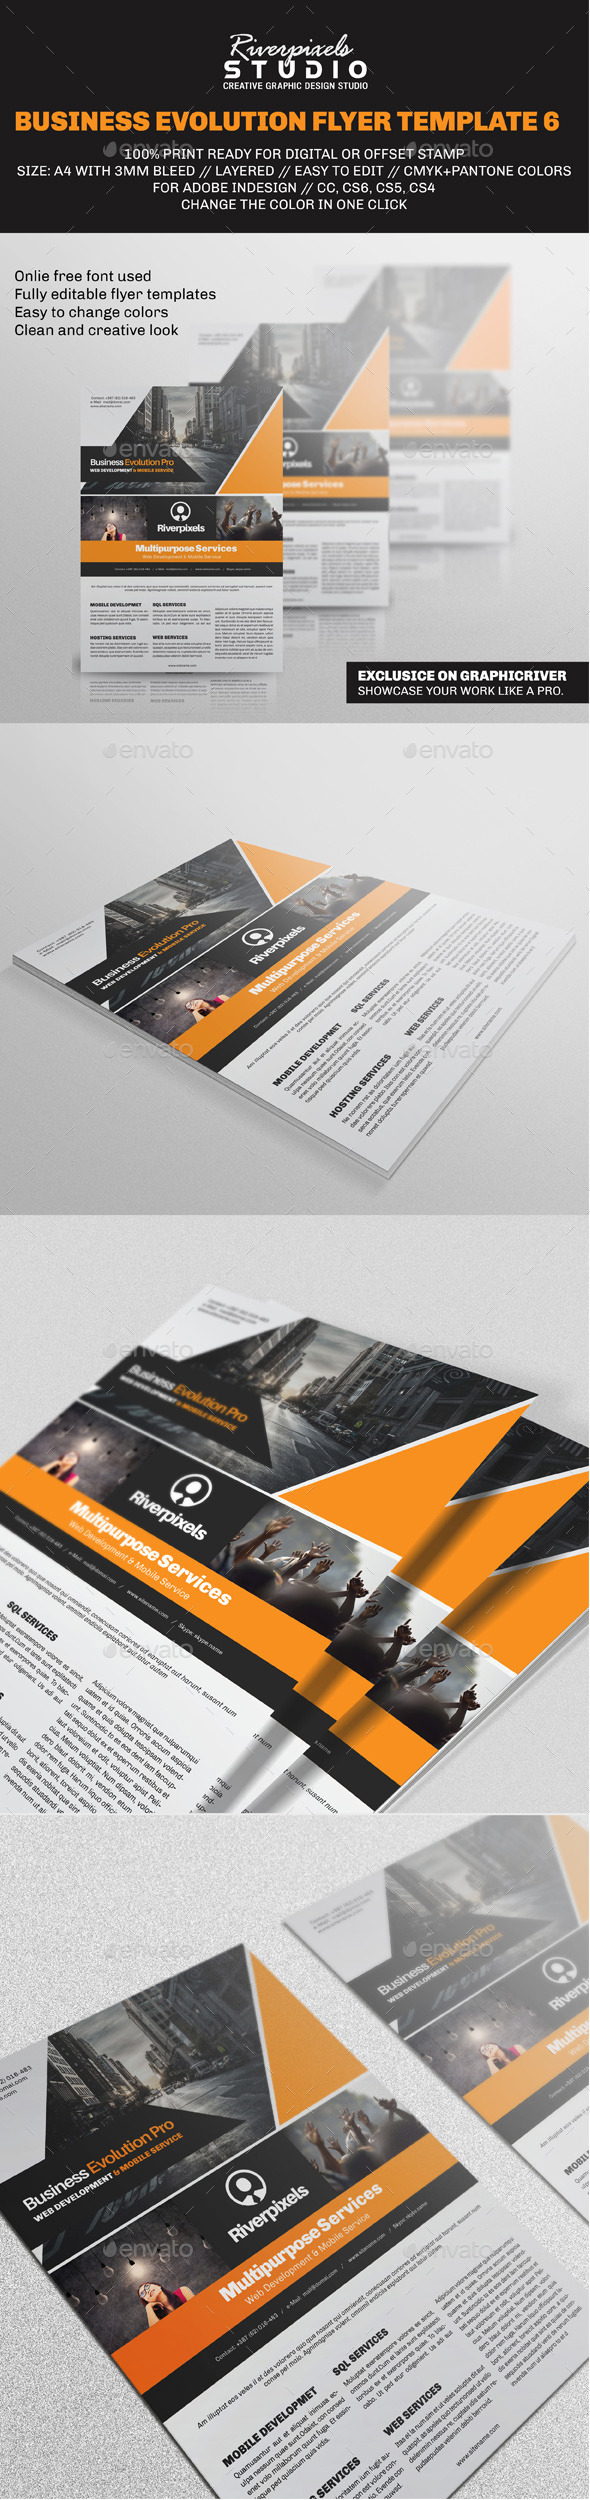 Business Evolution Flyer Template VI - Corporate Flyers